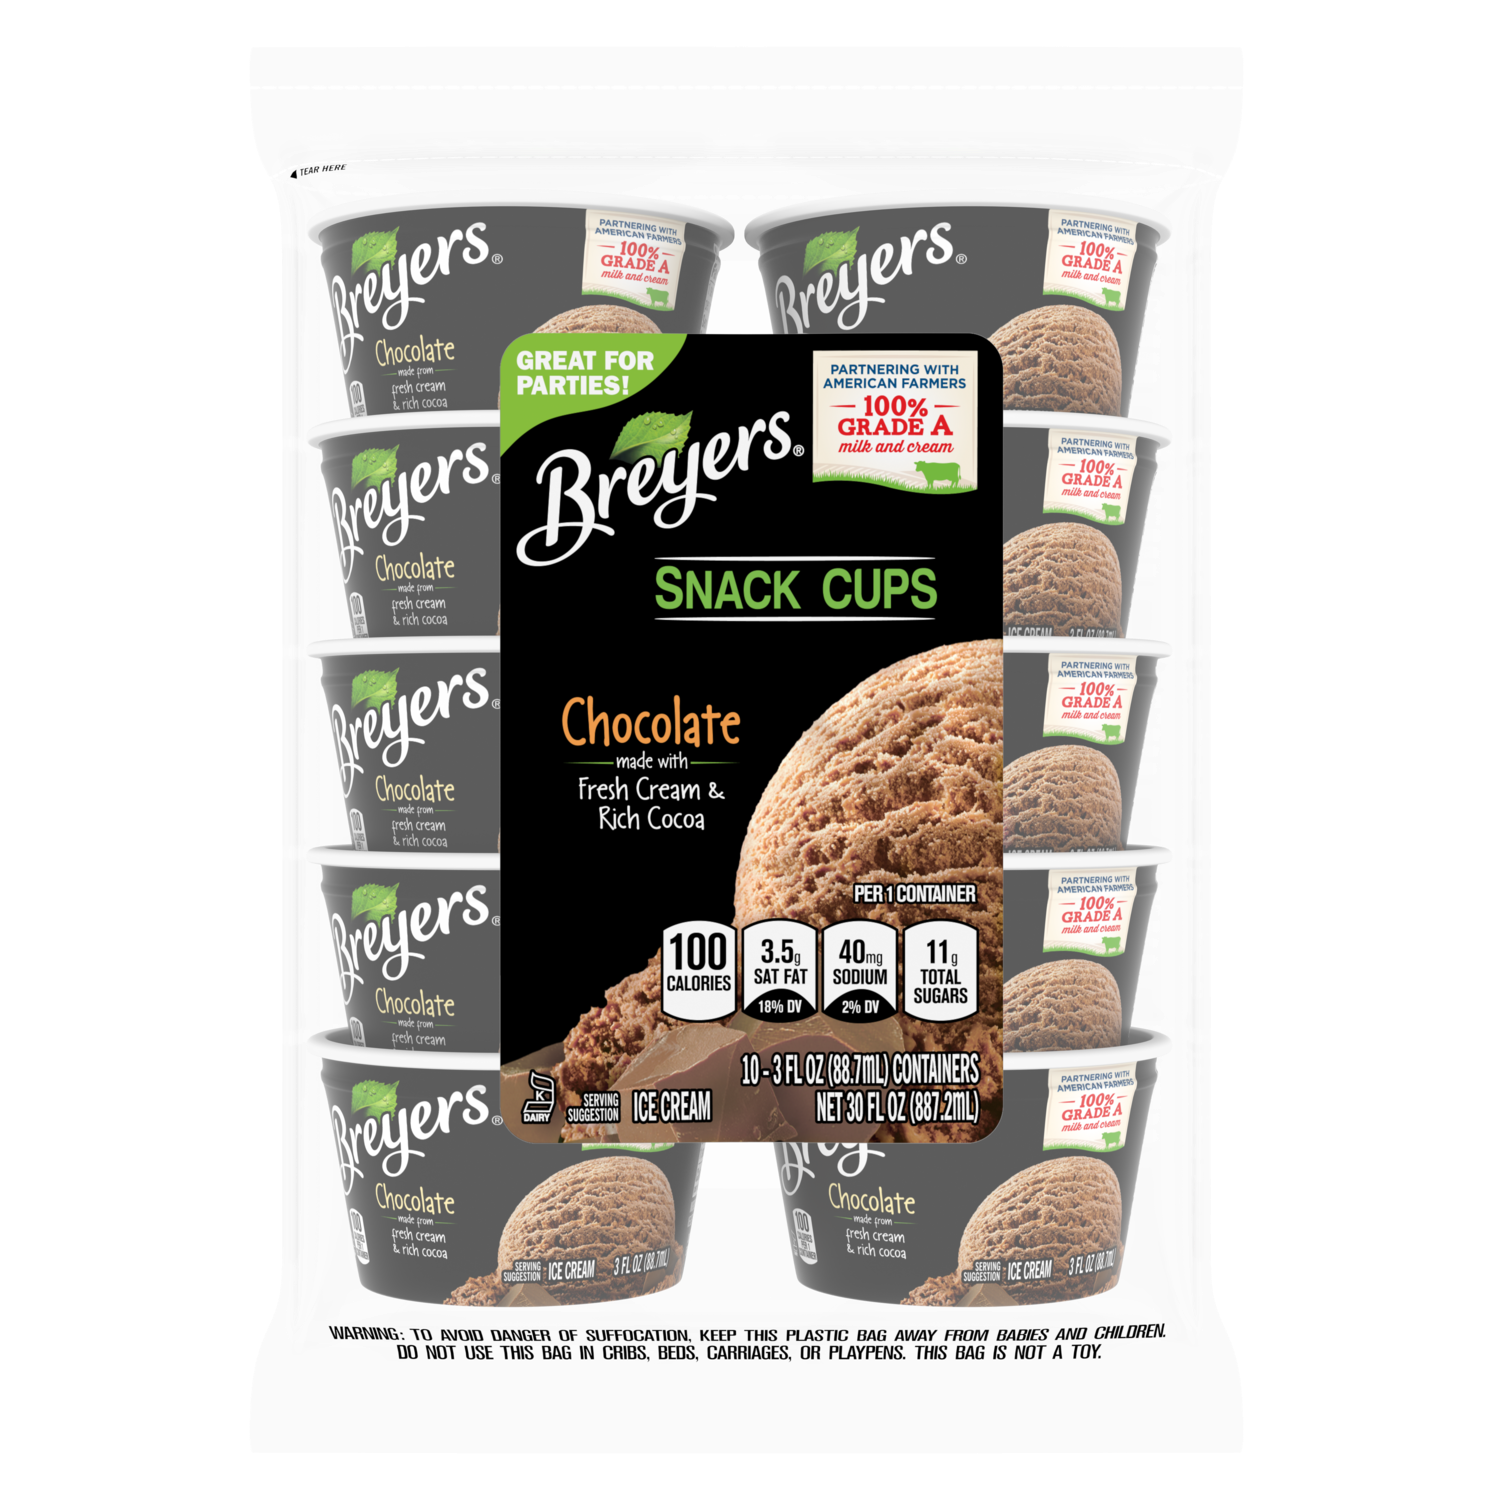 A 10 count bag of 3 ounce cups of Breyers Chocolate Snack Cups  front of pack